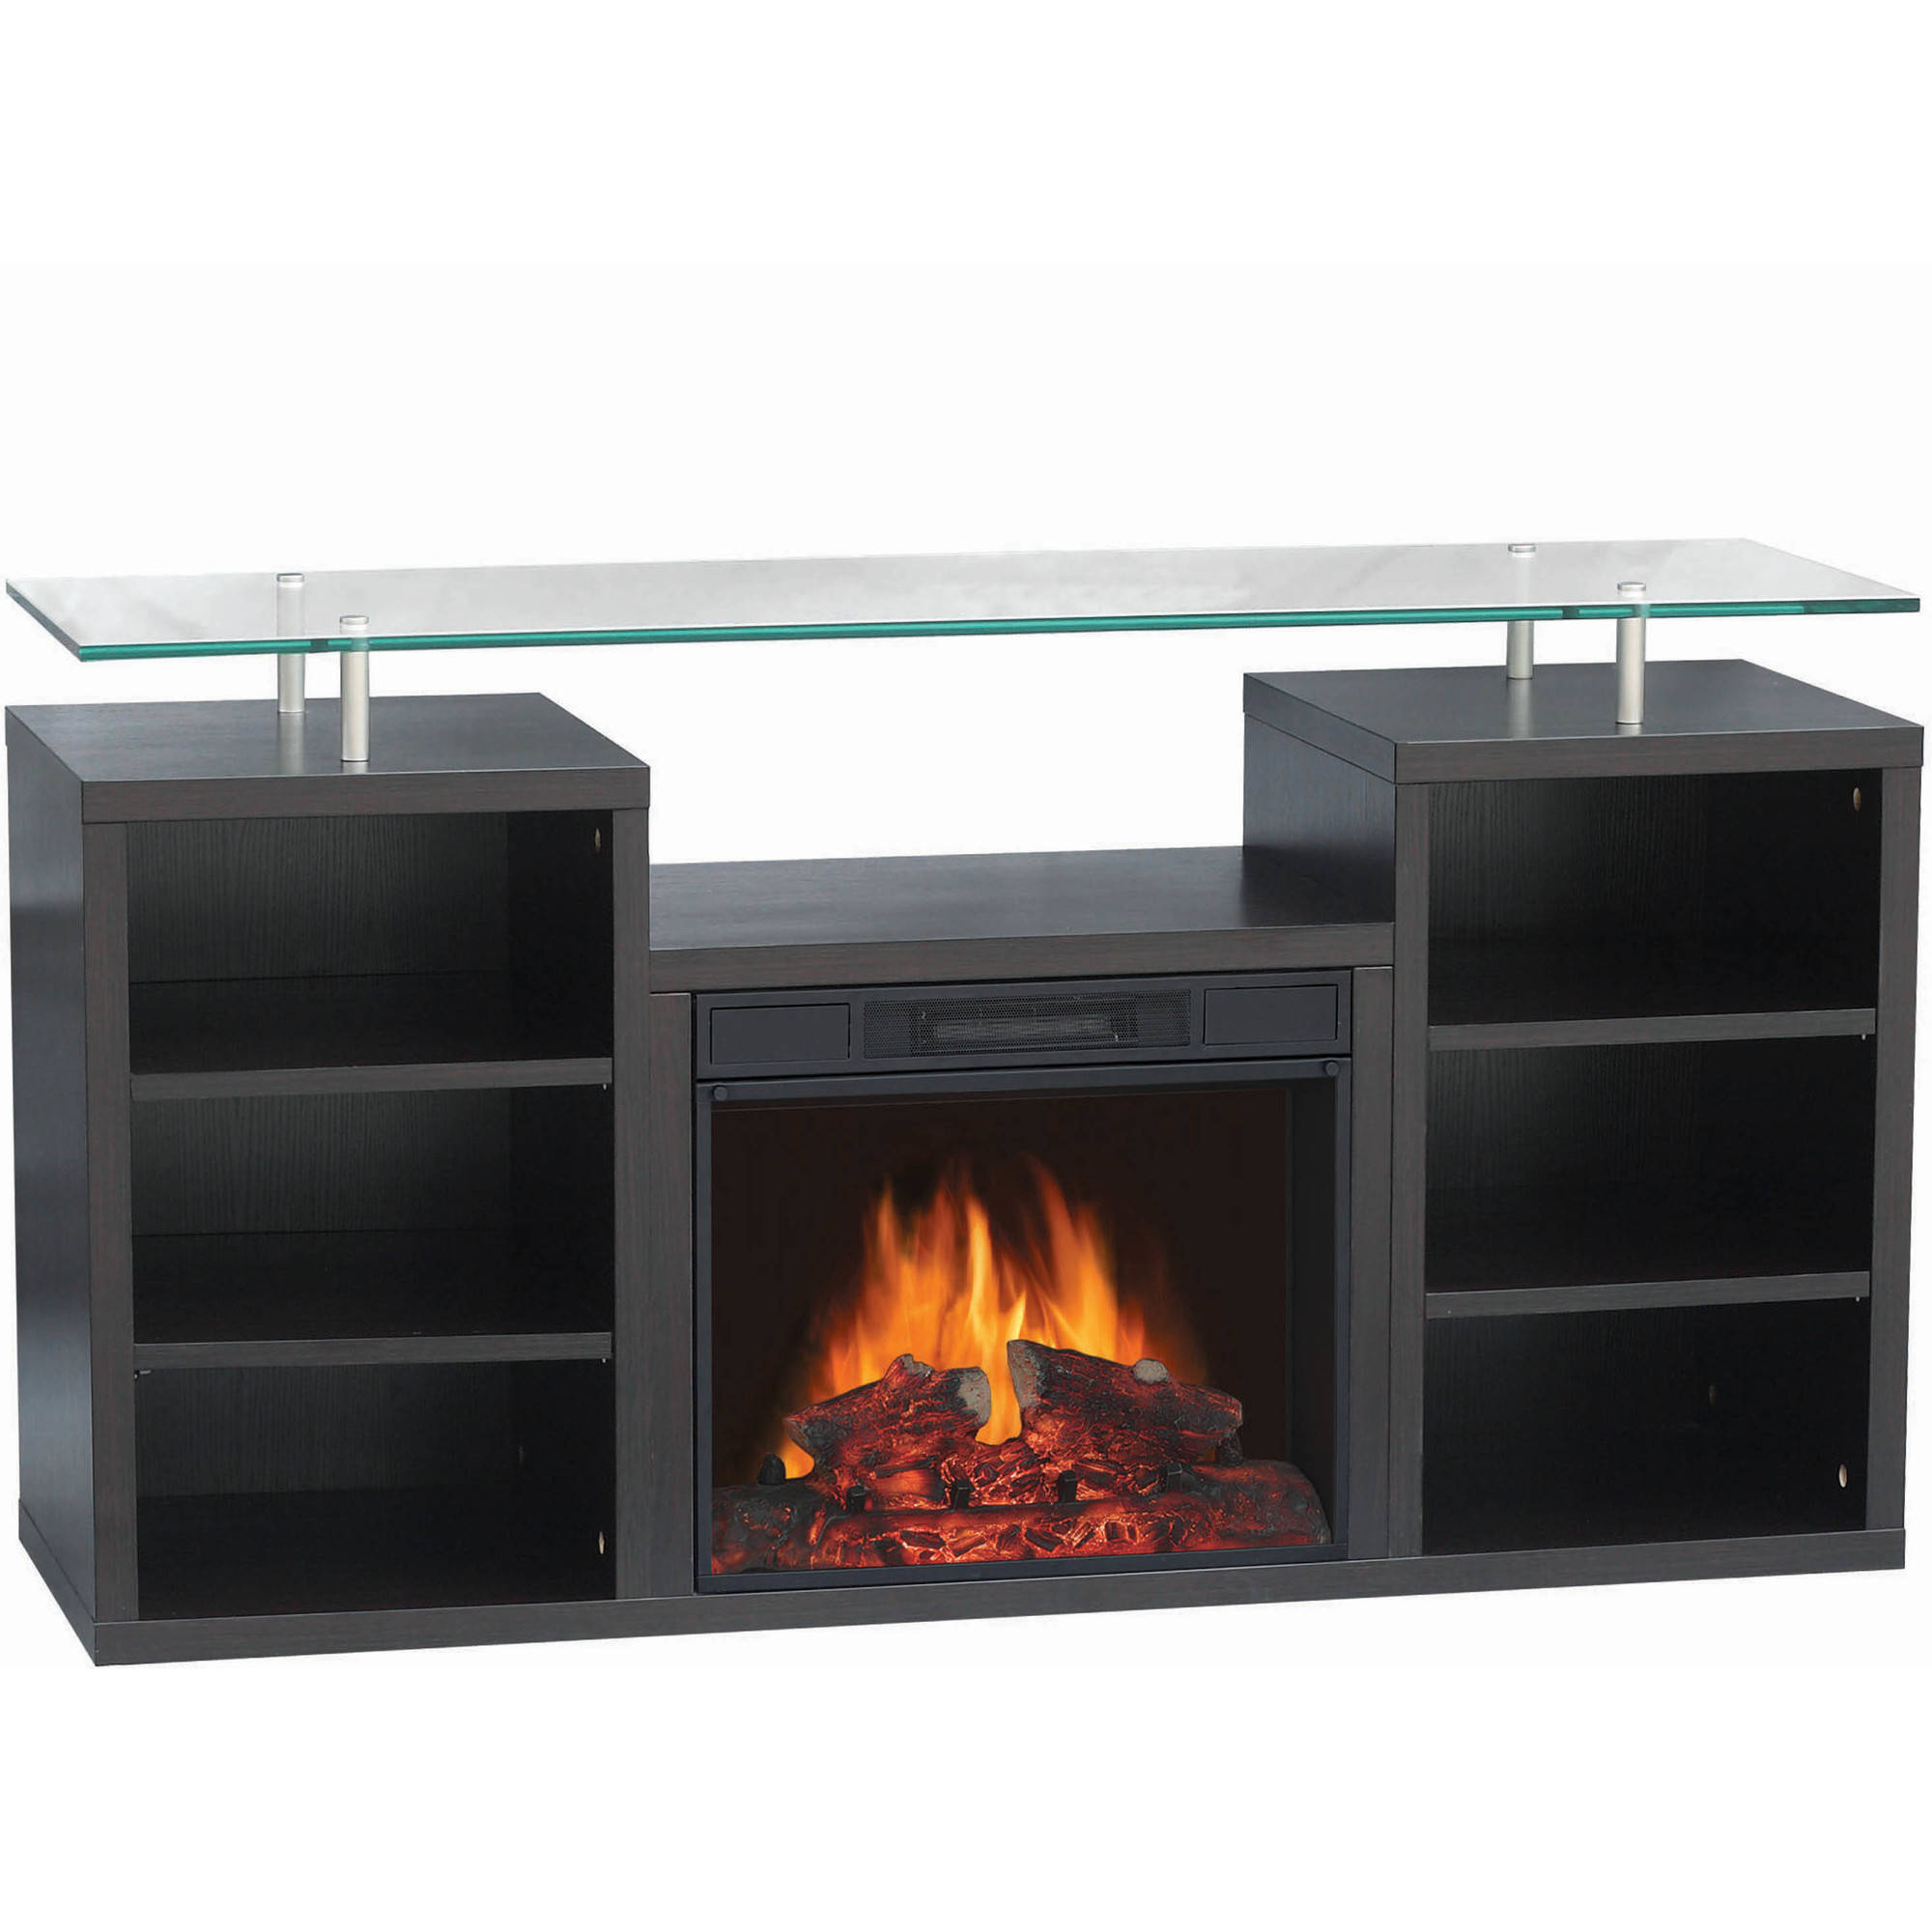 Superb Sarah Tv Stands Decor Flame Denali 50 Media Fireplace Download Free Architecture Designs Terstmadebymaigaardcom